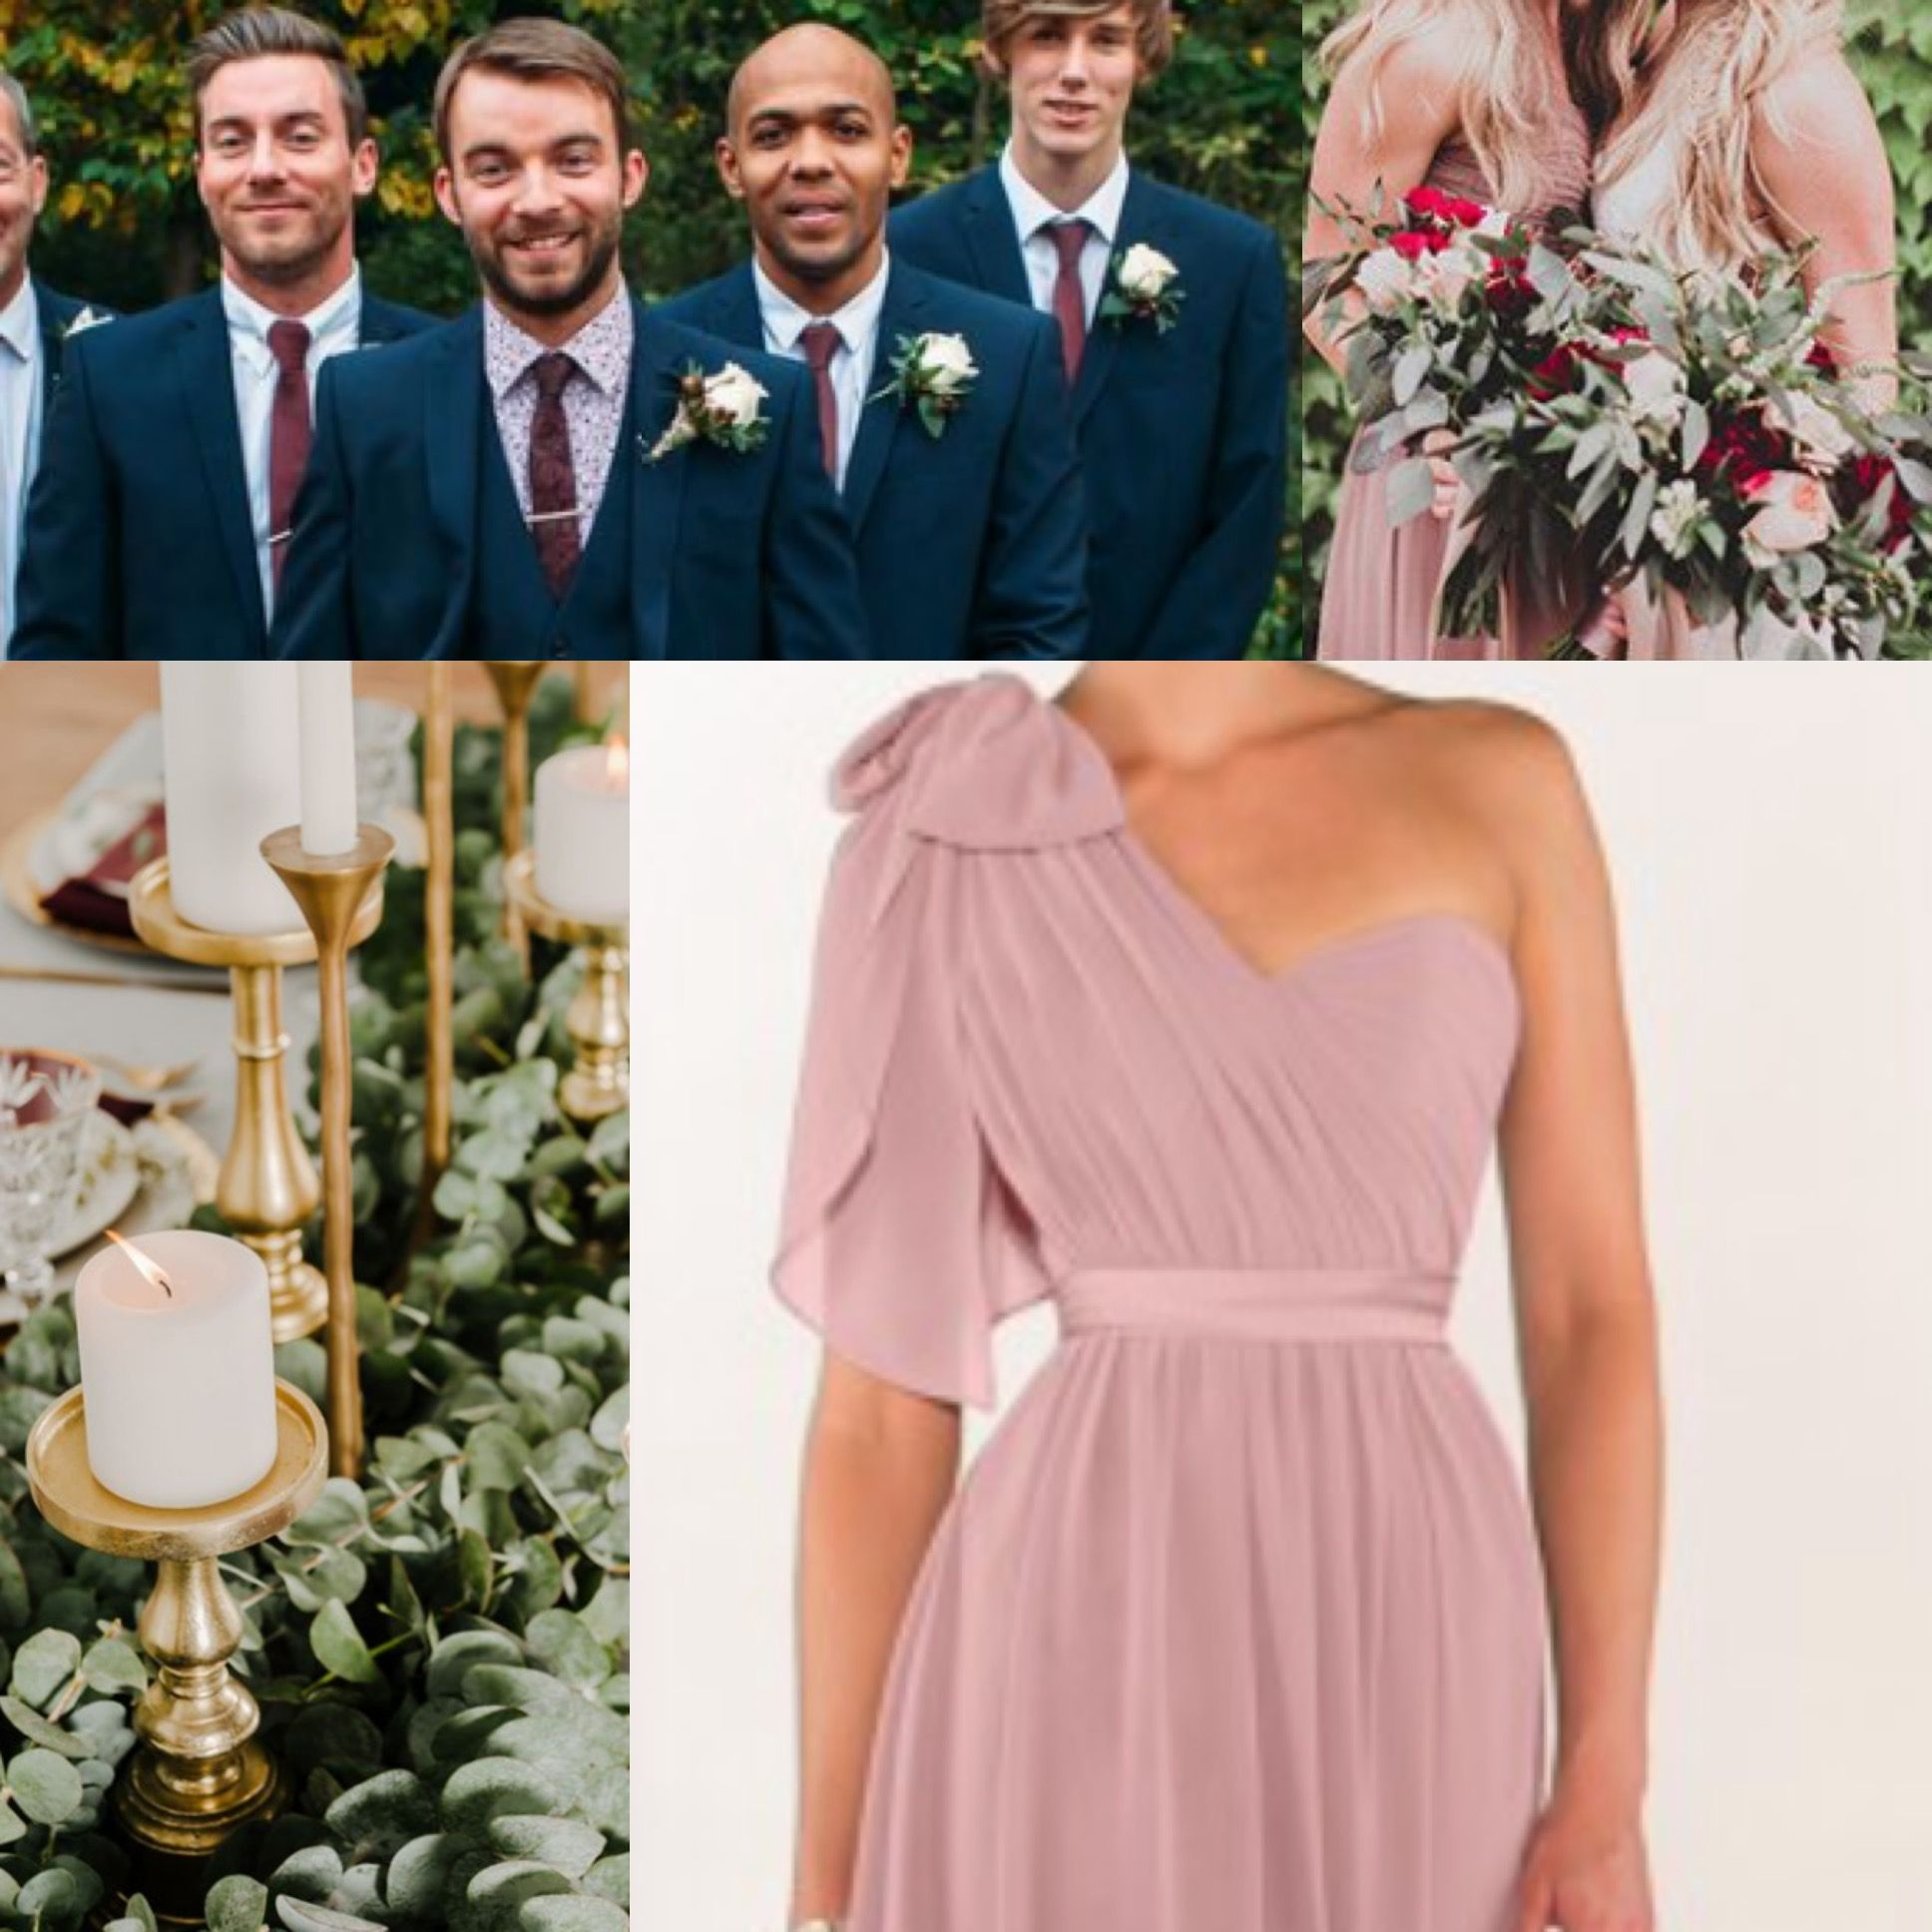 Dusty rose, marsala, navy, & gold | wedding | Pinterest | Vestidos ...